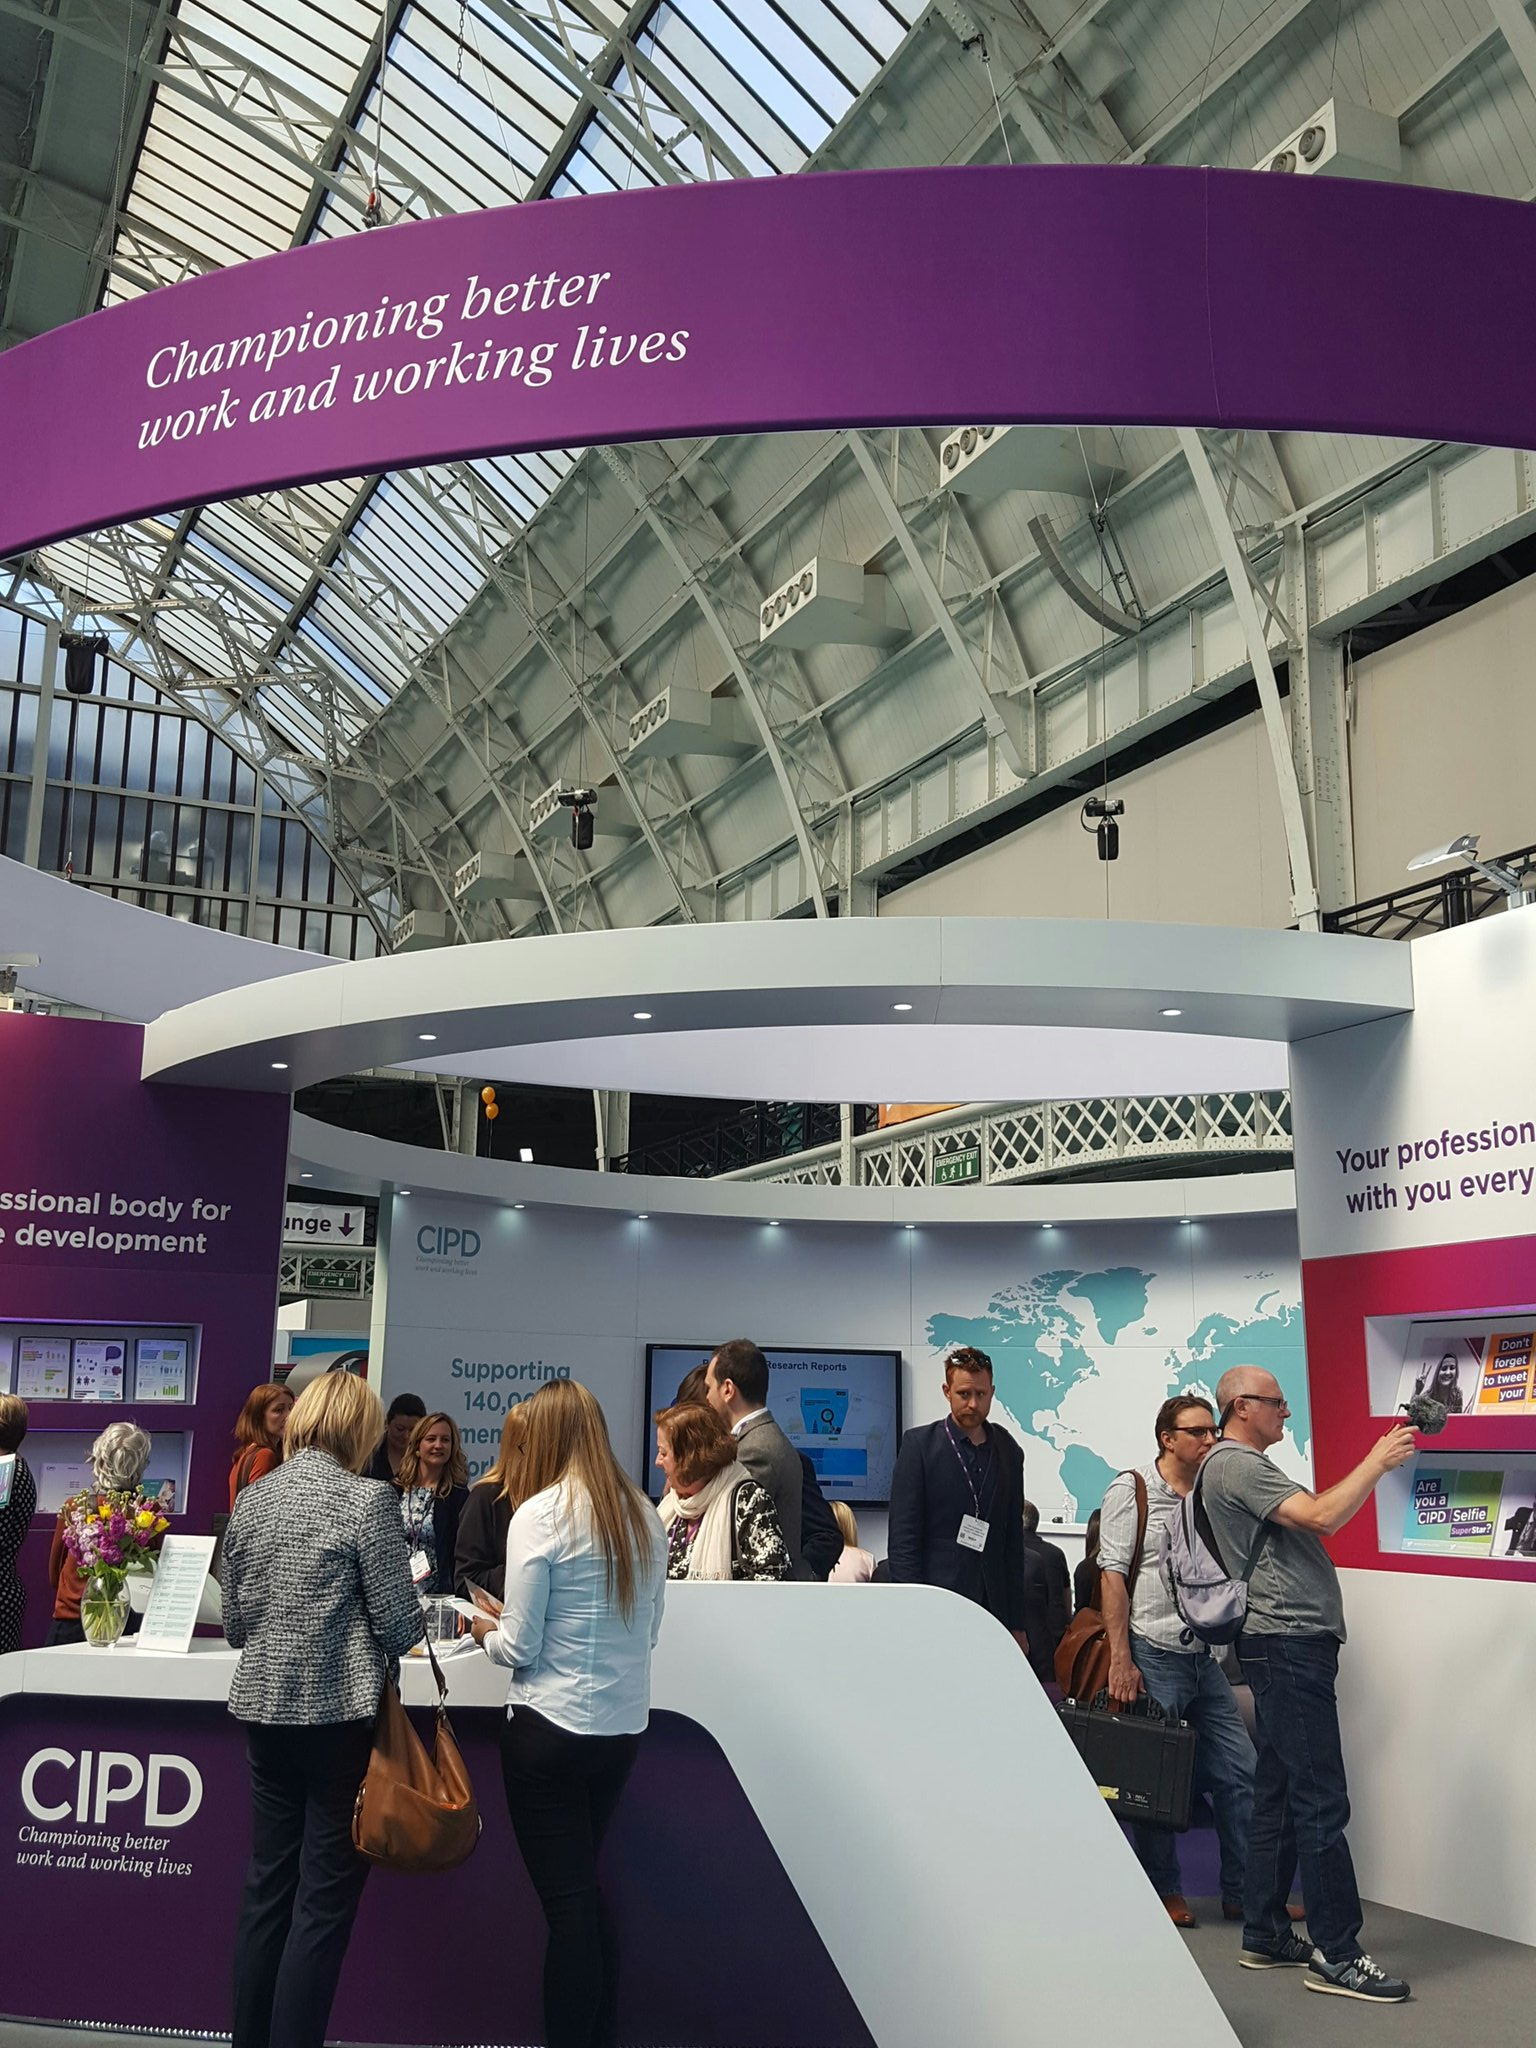 @CIPD stand 13:00 talk on Making the most of the Apprenticeship Levy... #cipdldshow https://t.co/5e9Mb2jdVS